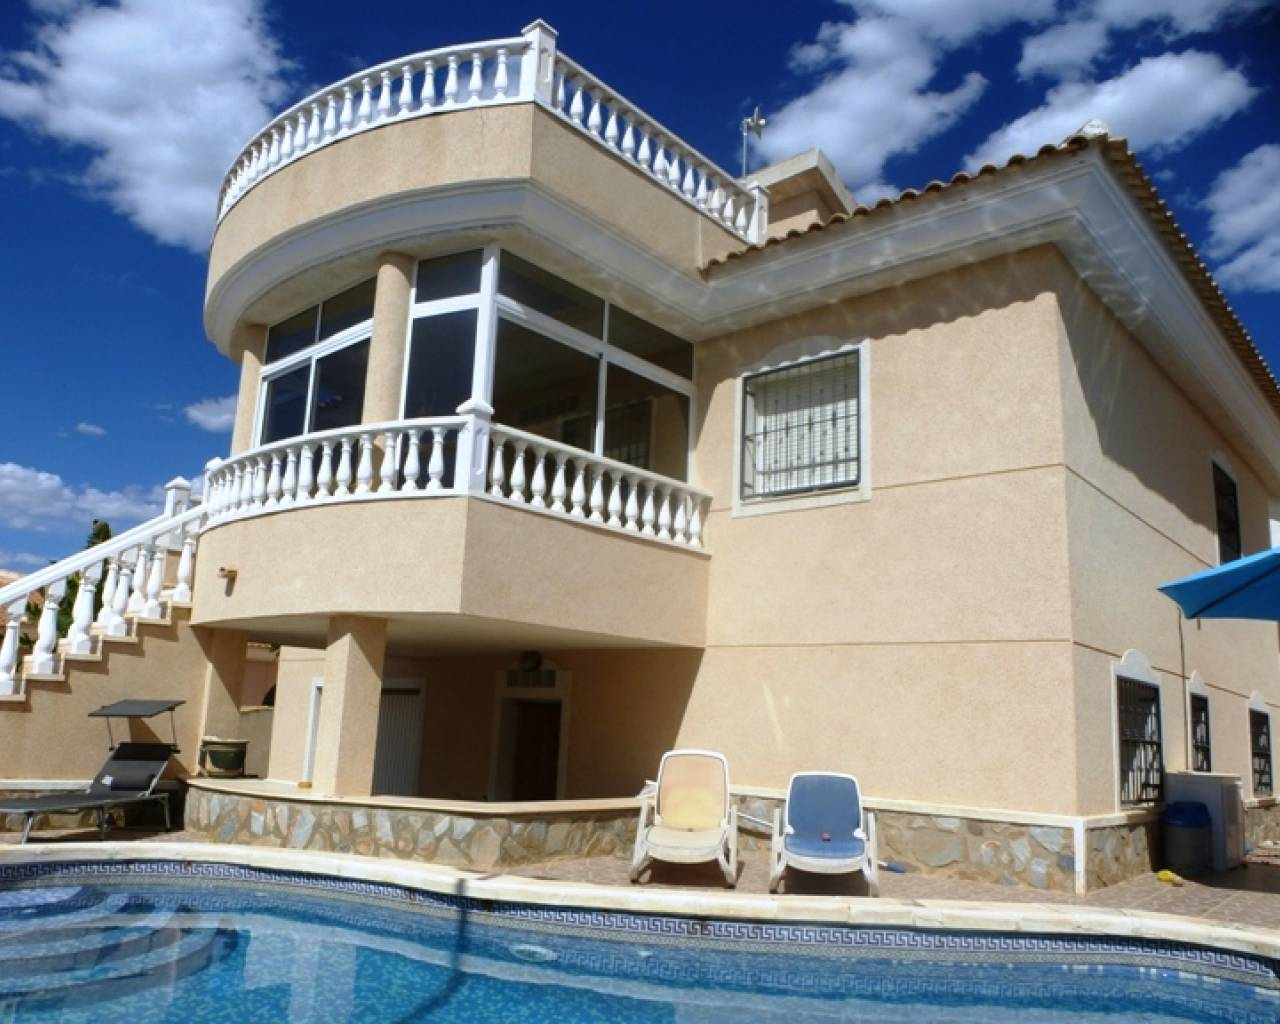 Detached Villa - Sale - Benijófar - Benijófar